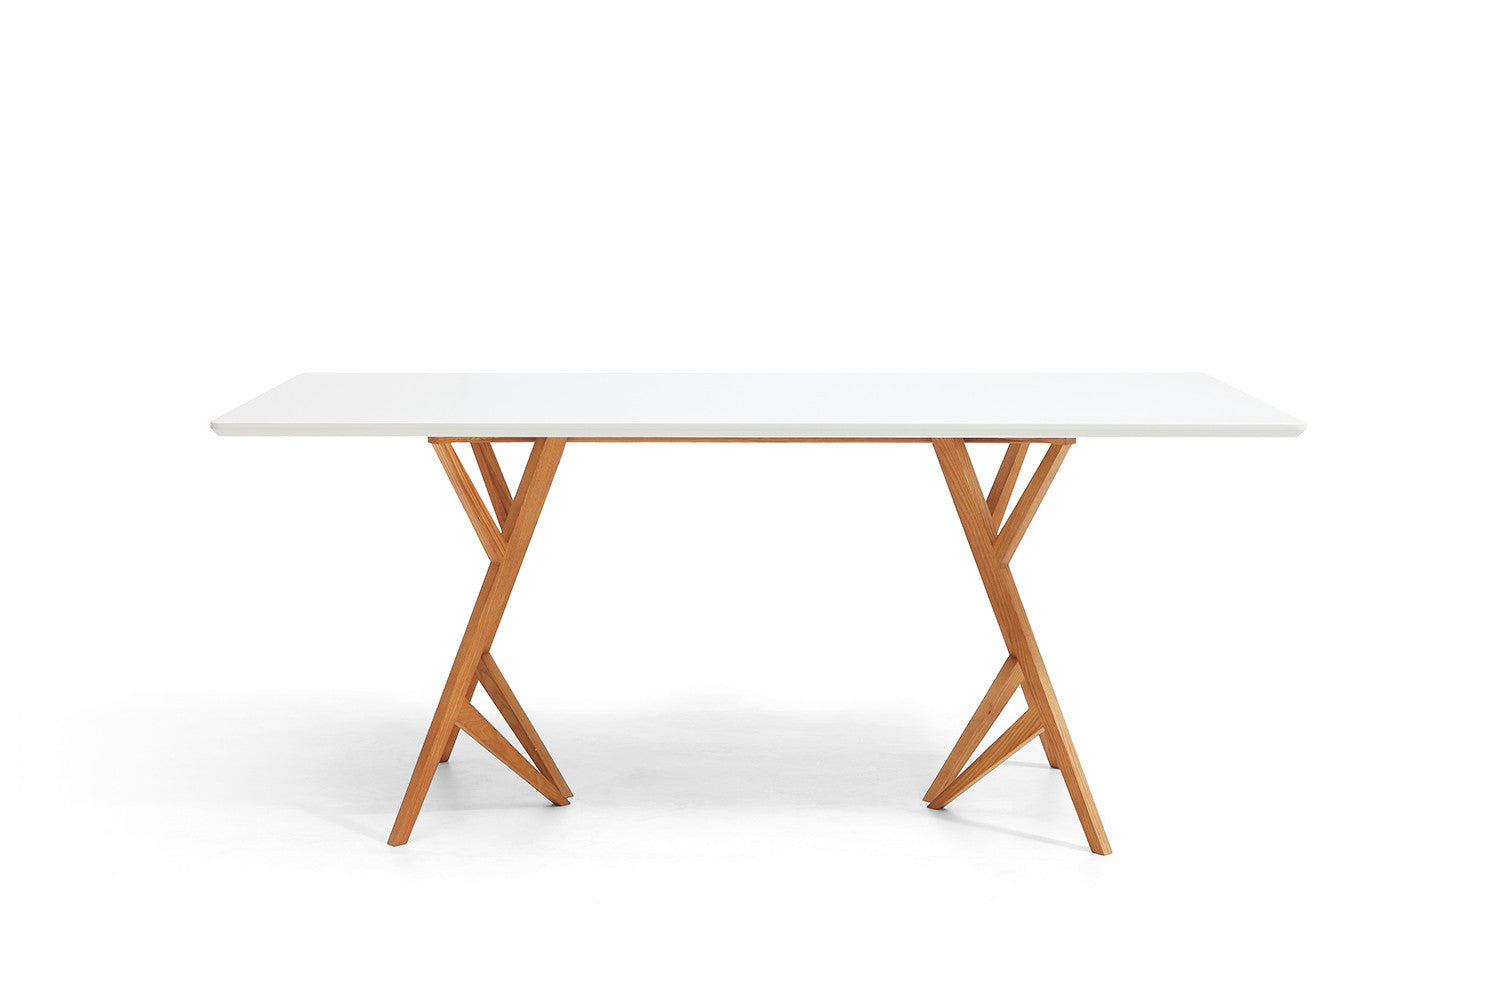 Table de salle manger design scandinave vispa dewarens for Table de salle a manger design